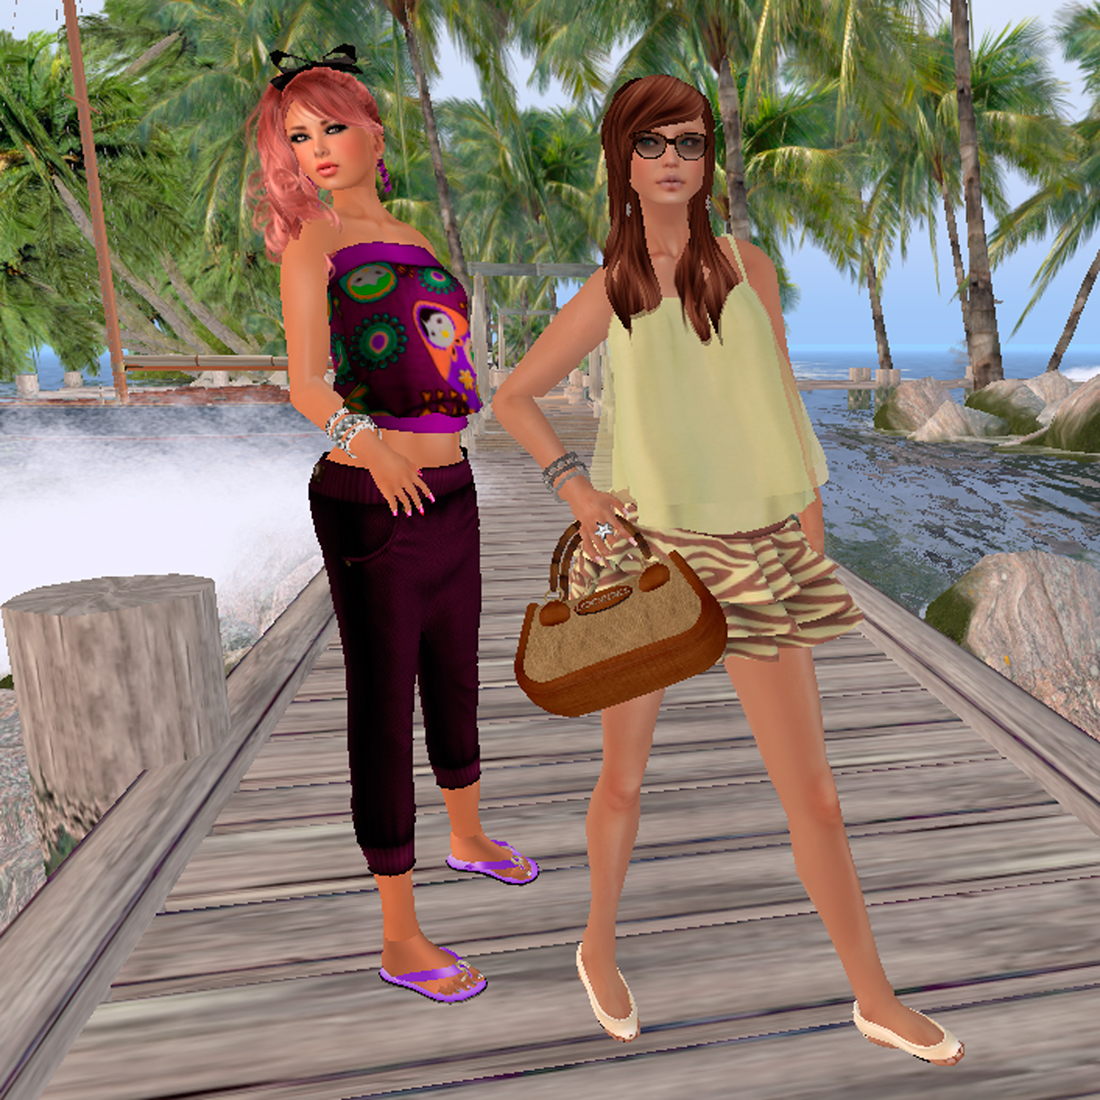 Sandra model dolcemodz candydooll oceane dreams set quoteko com